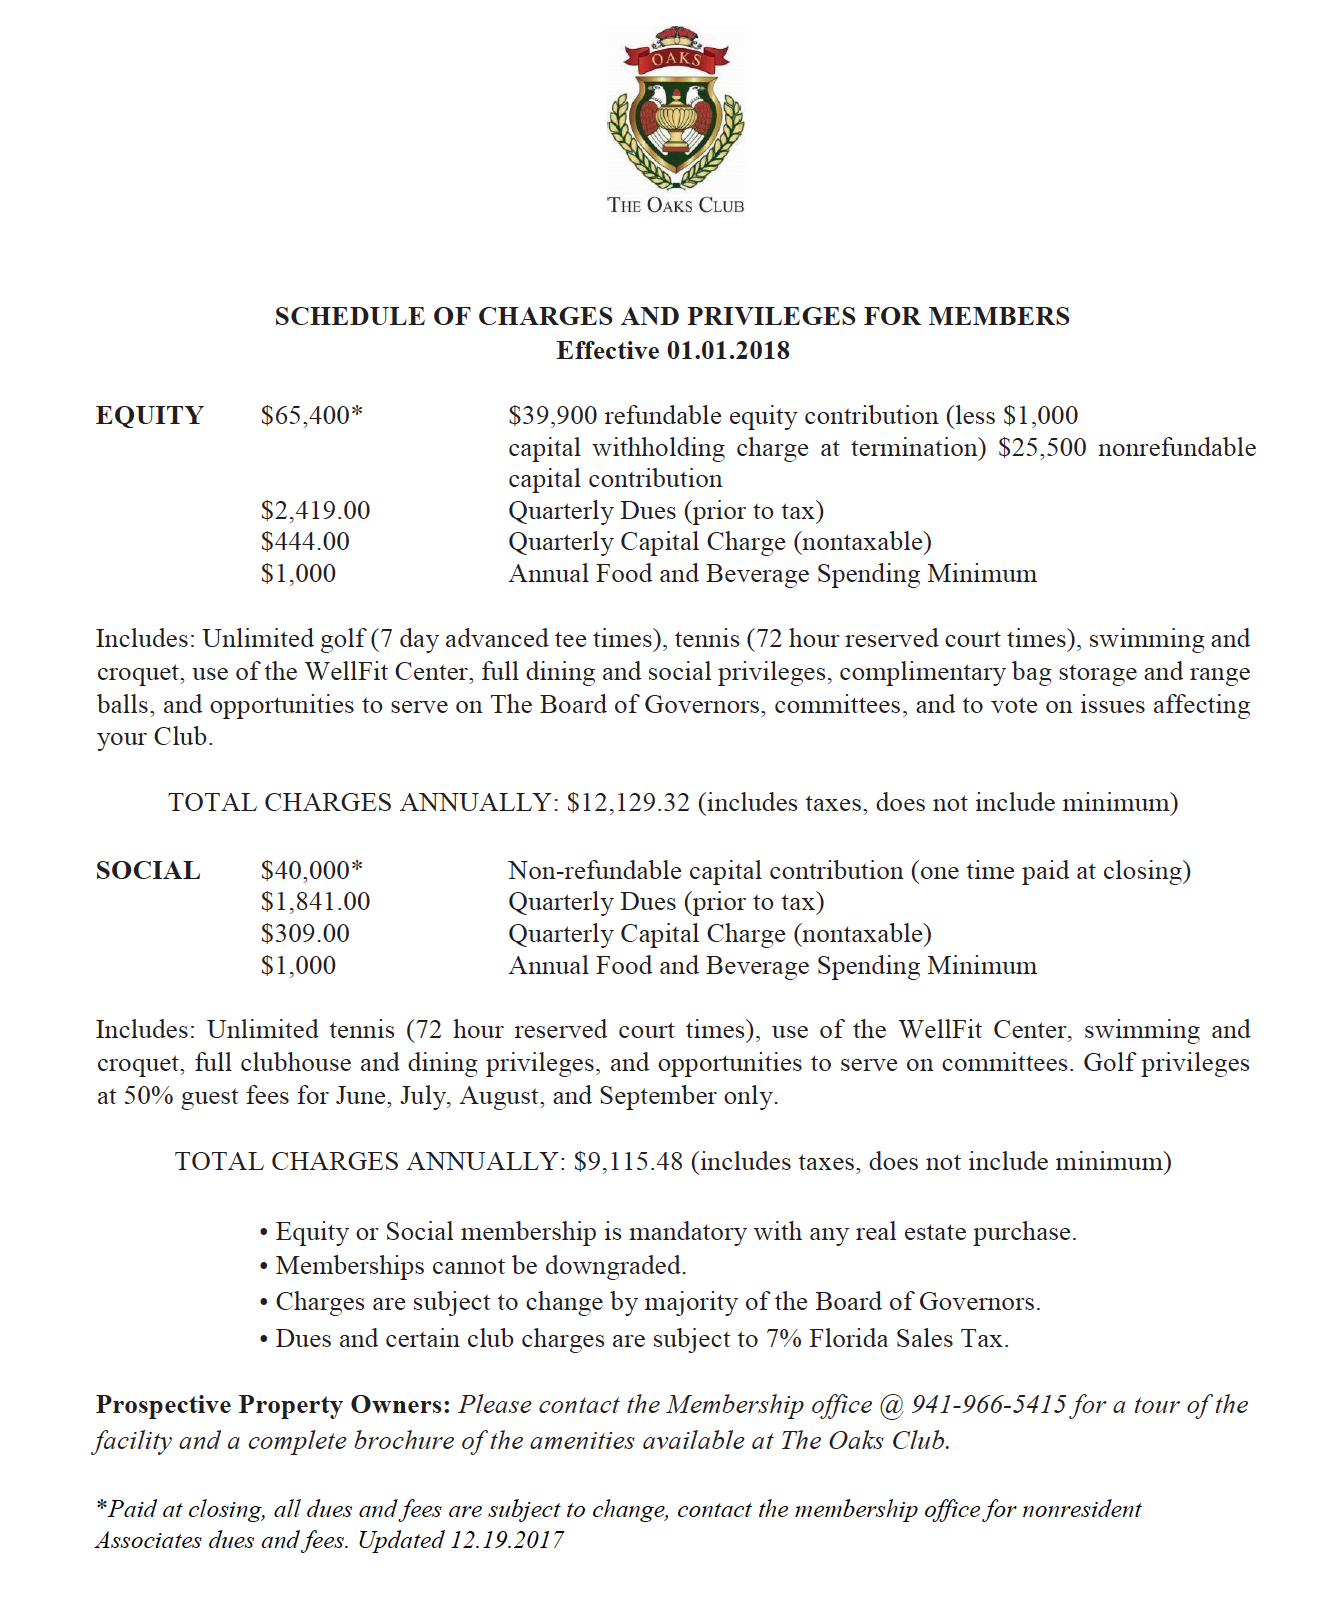 The Oaks Club Fees Schedule 2018